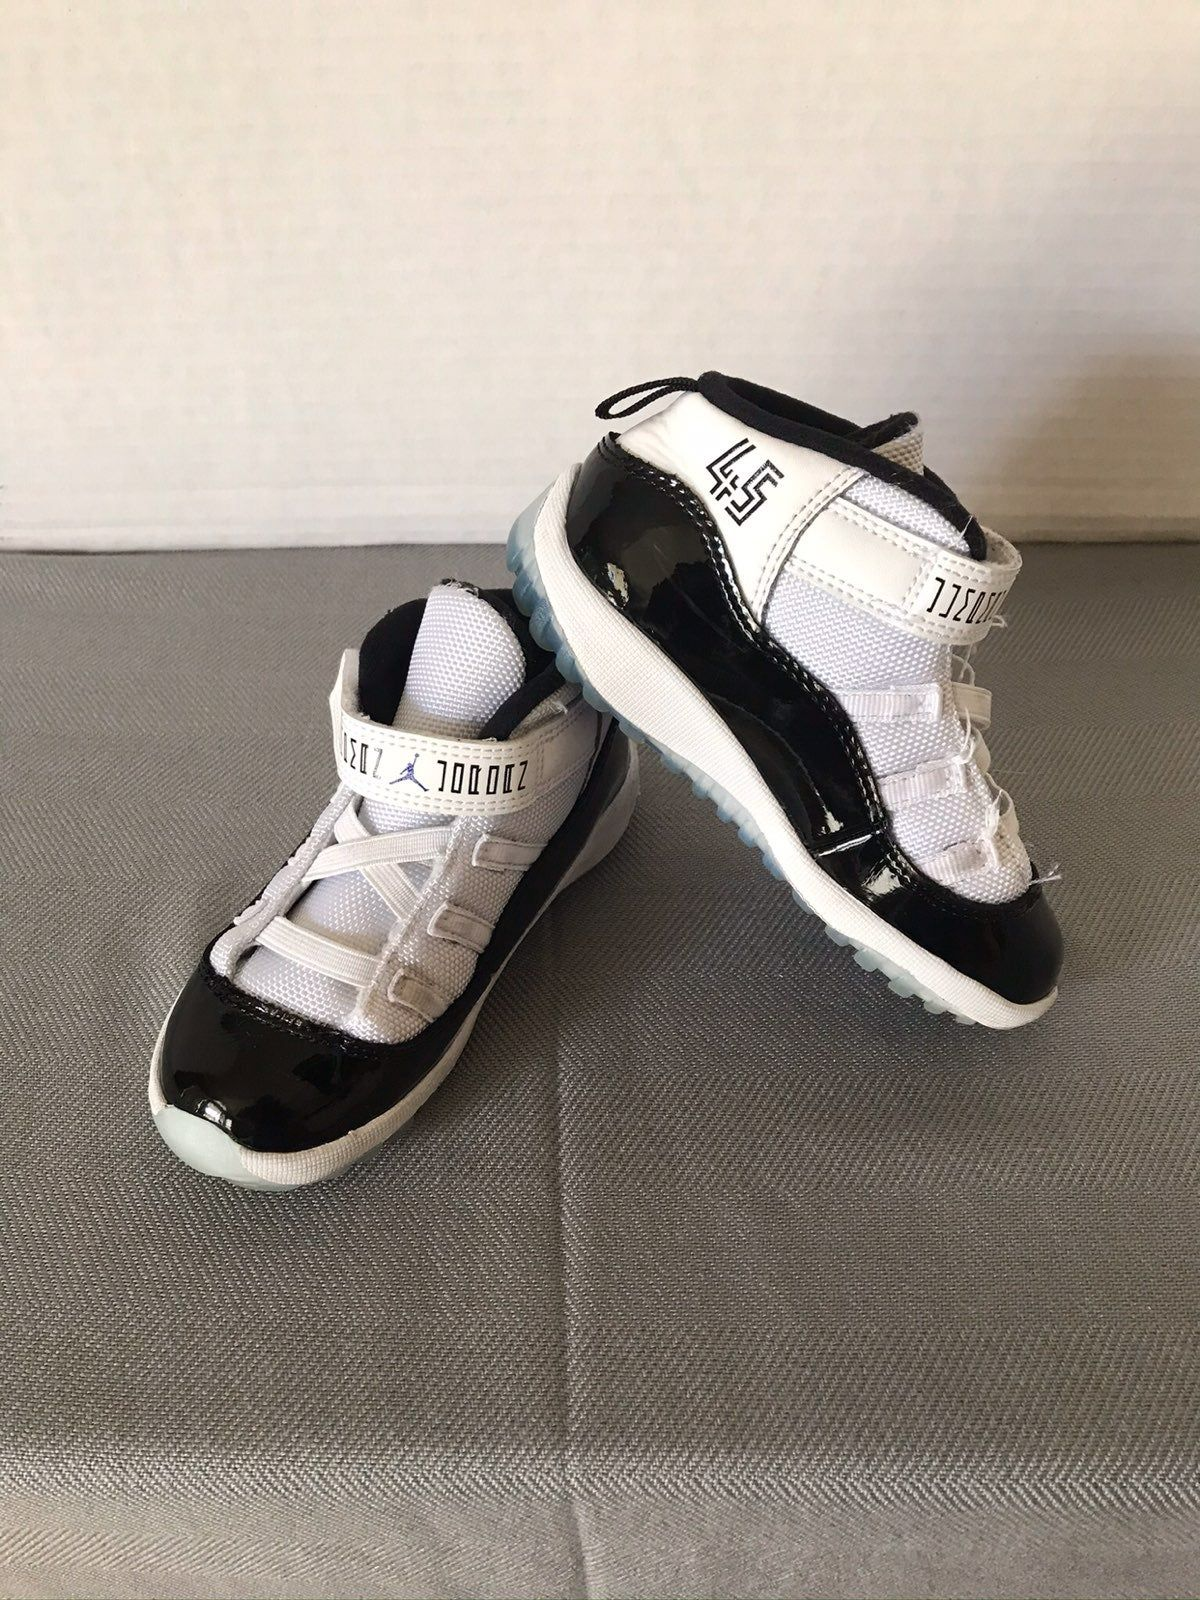 Used Air Jordan 11 Retro Concords Toddler Size 9C Slight cleaning ...